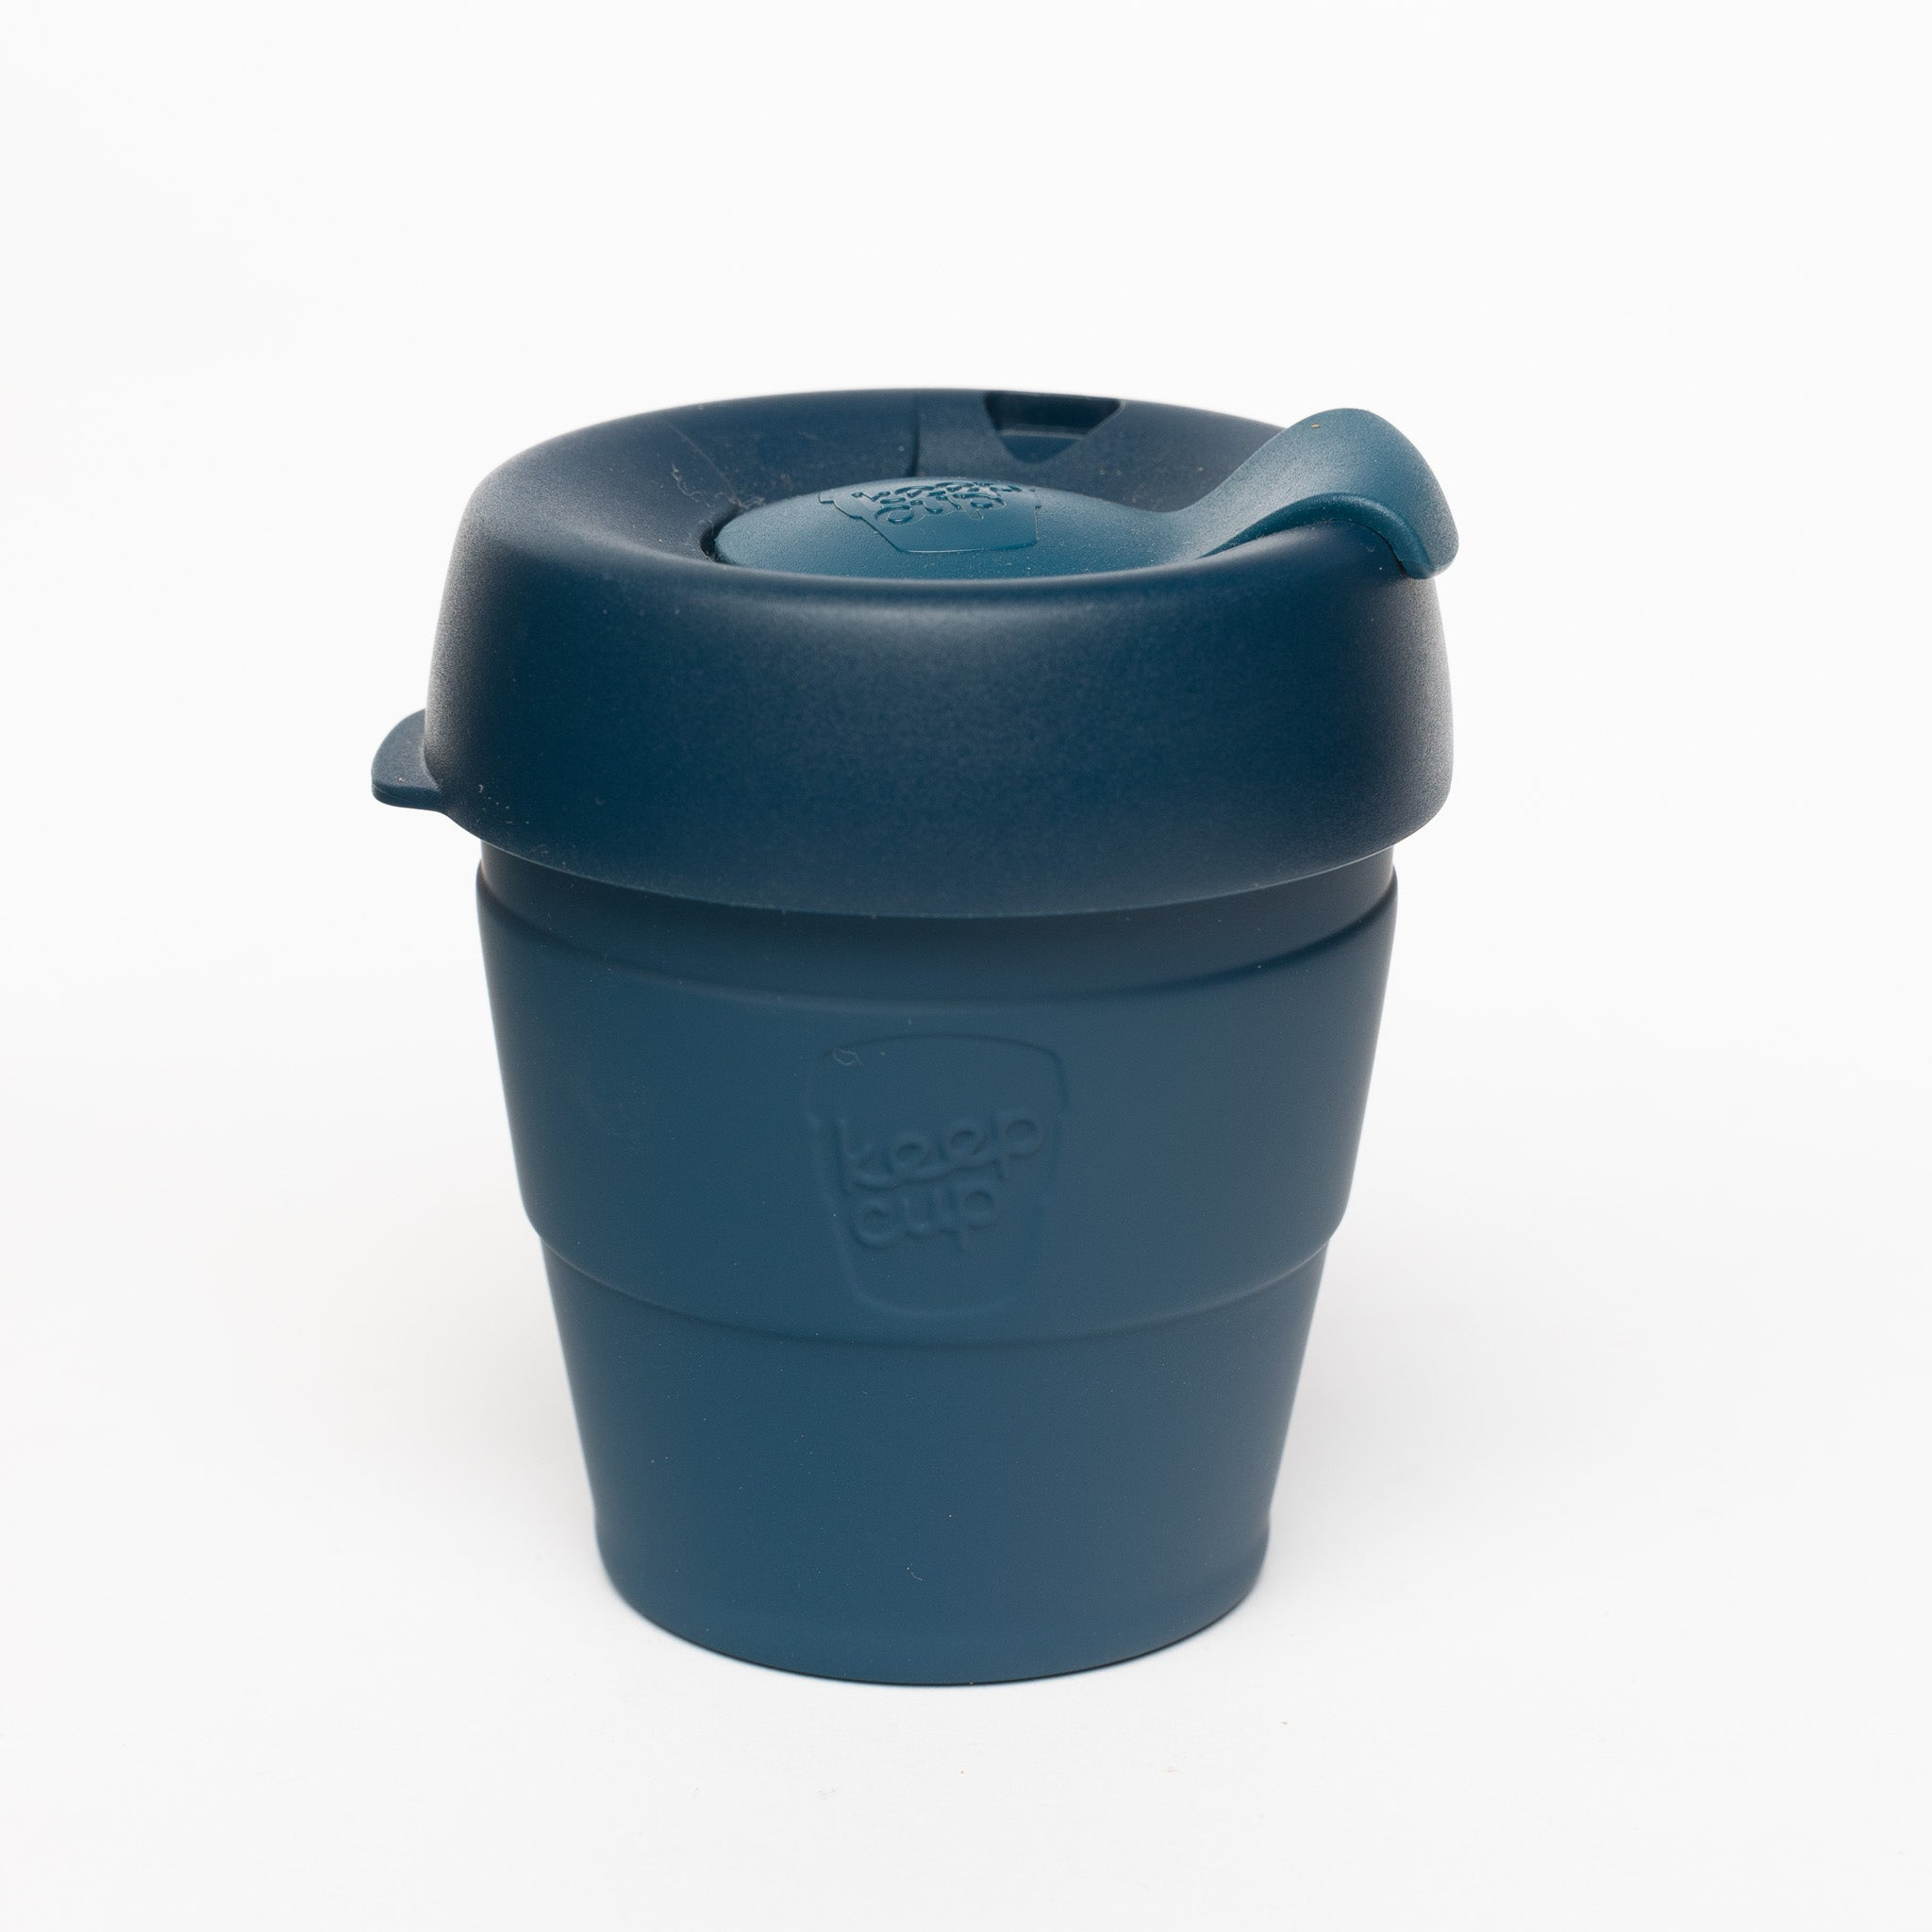 Thermal Reusable Coffee Cup - 6oz - Spruce